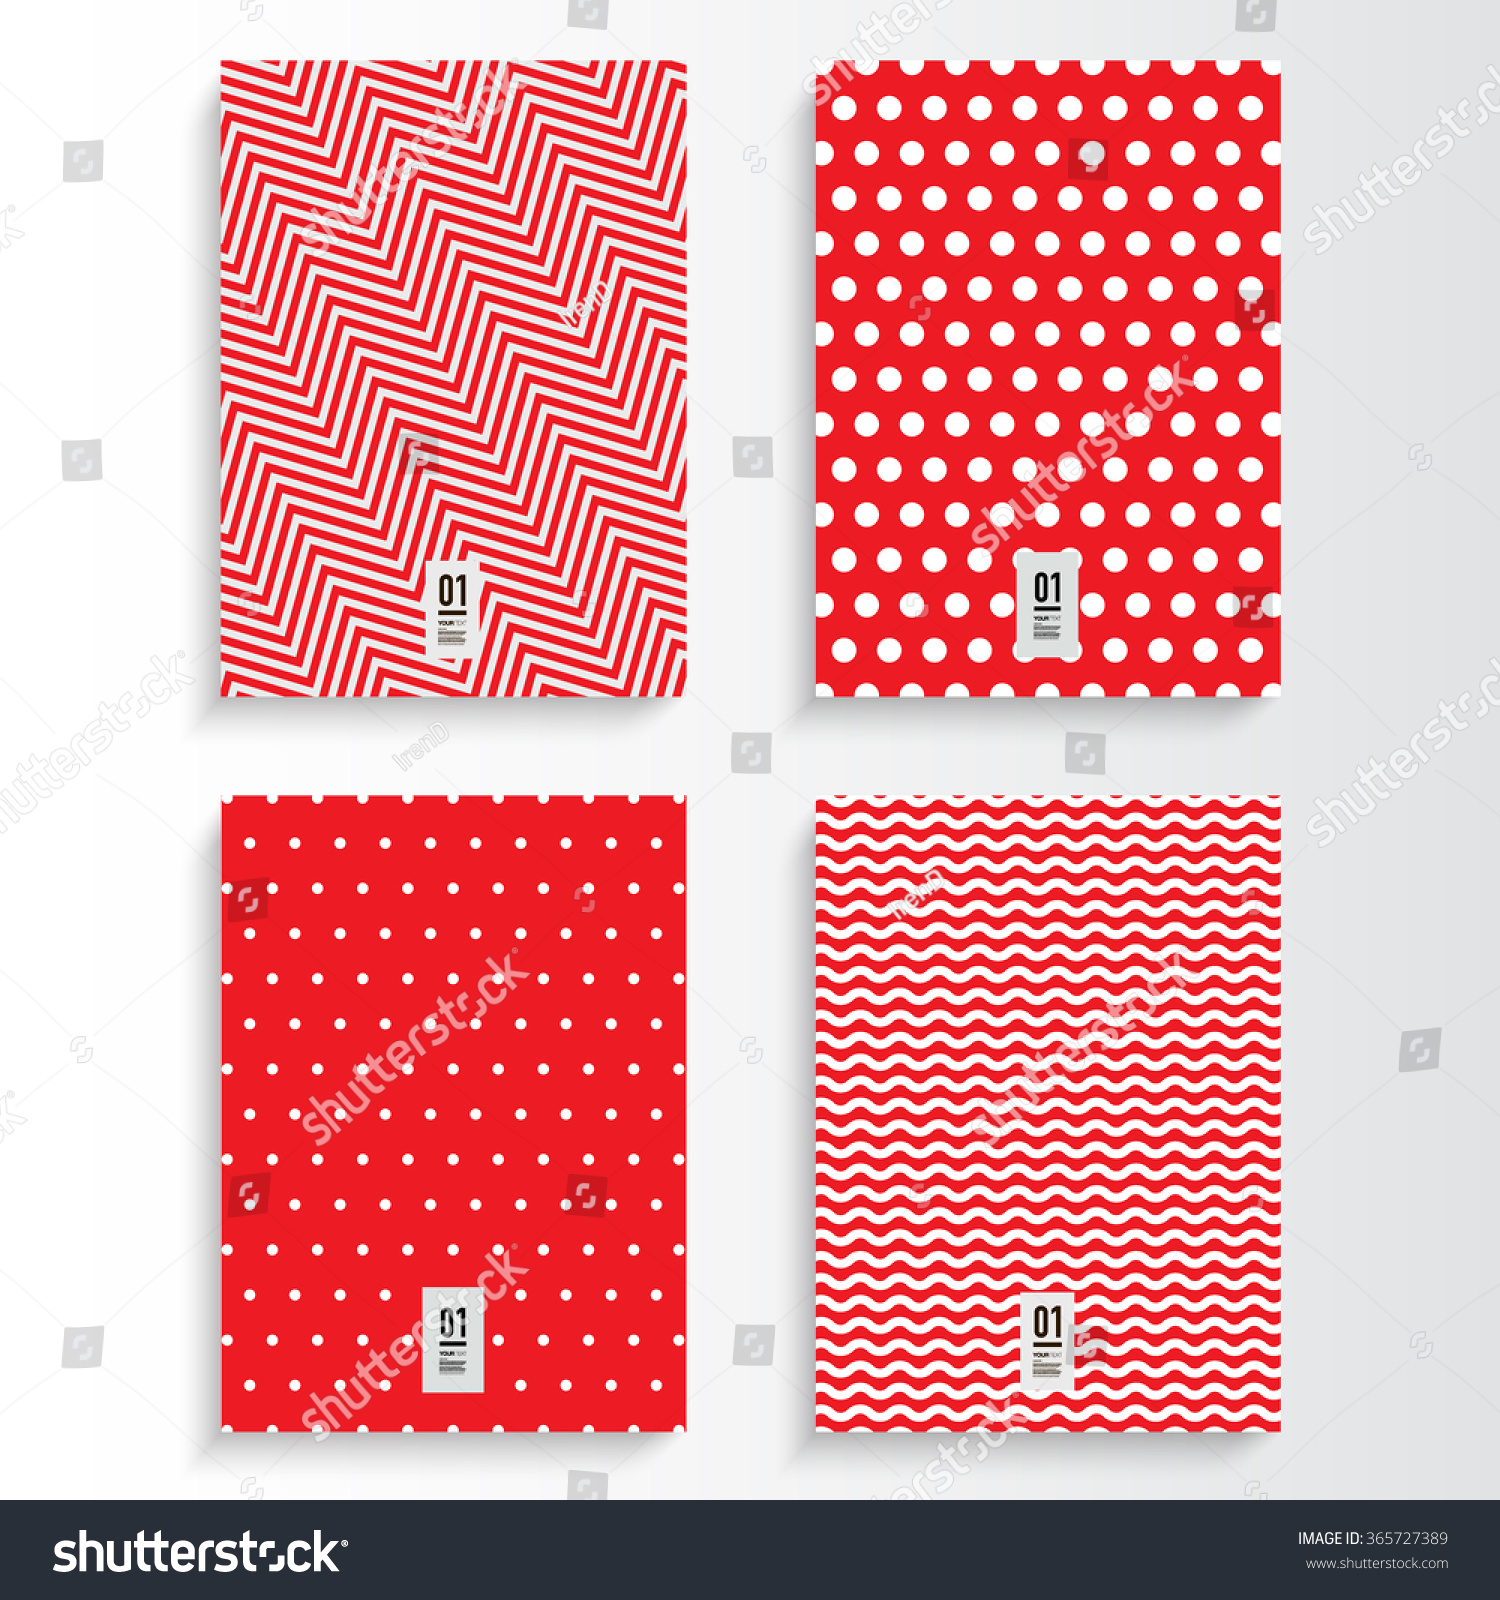 Red Book Cover Design ~ Abstract red and white flyer or book cover design set with